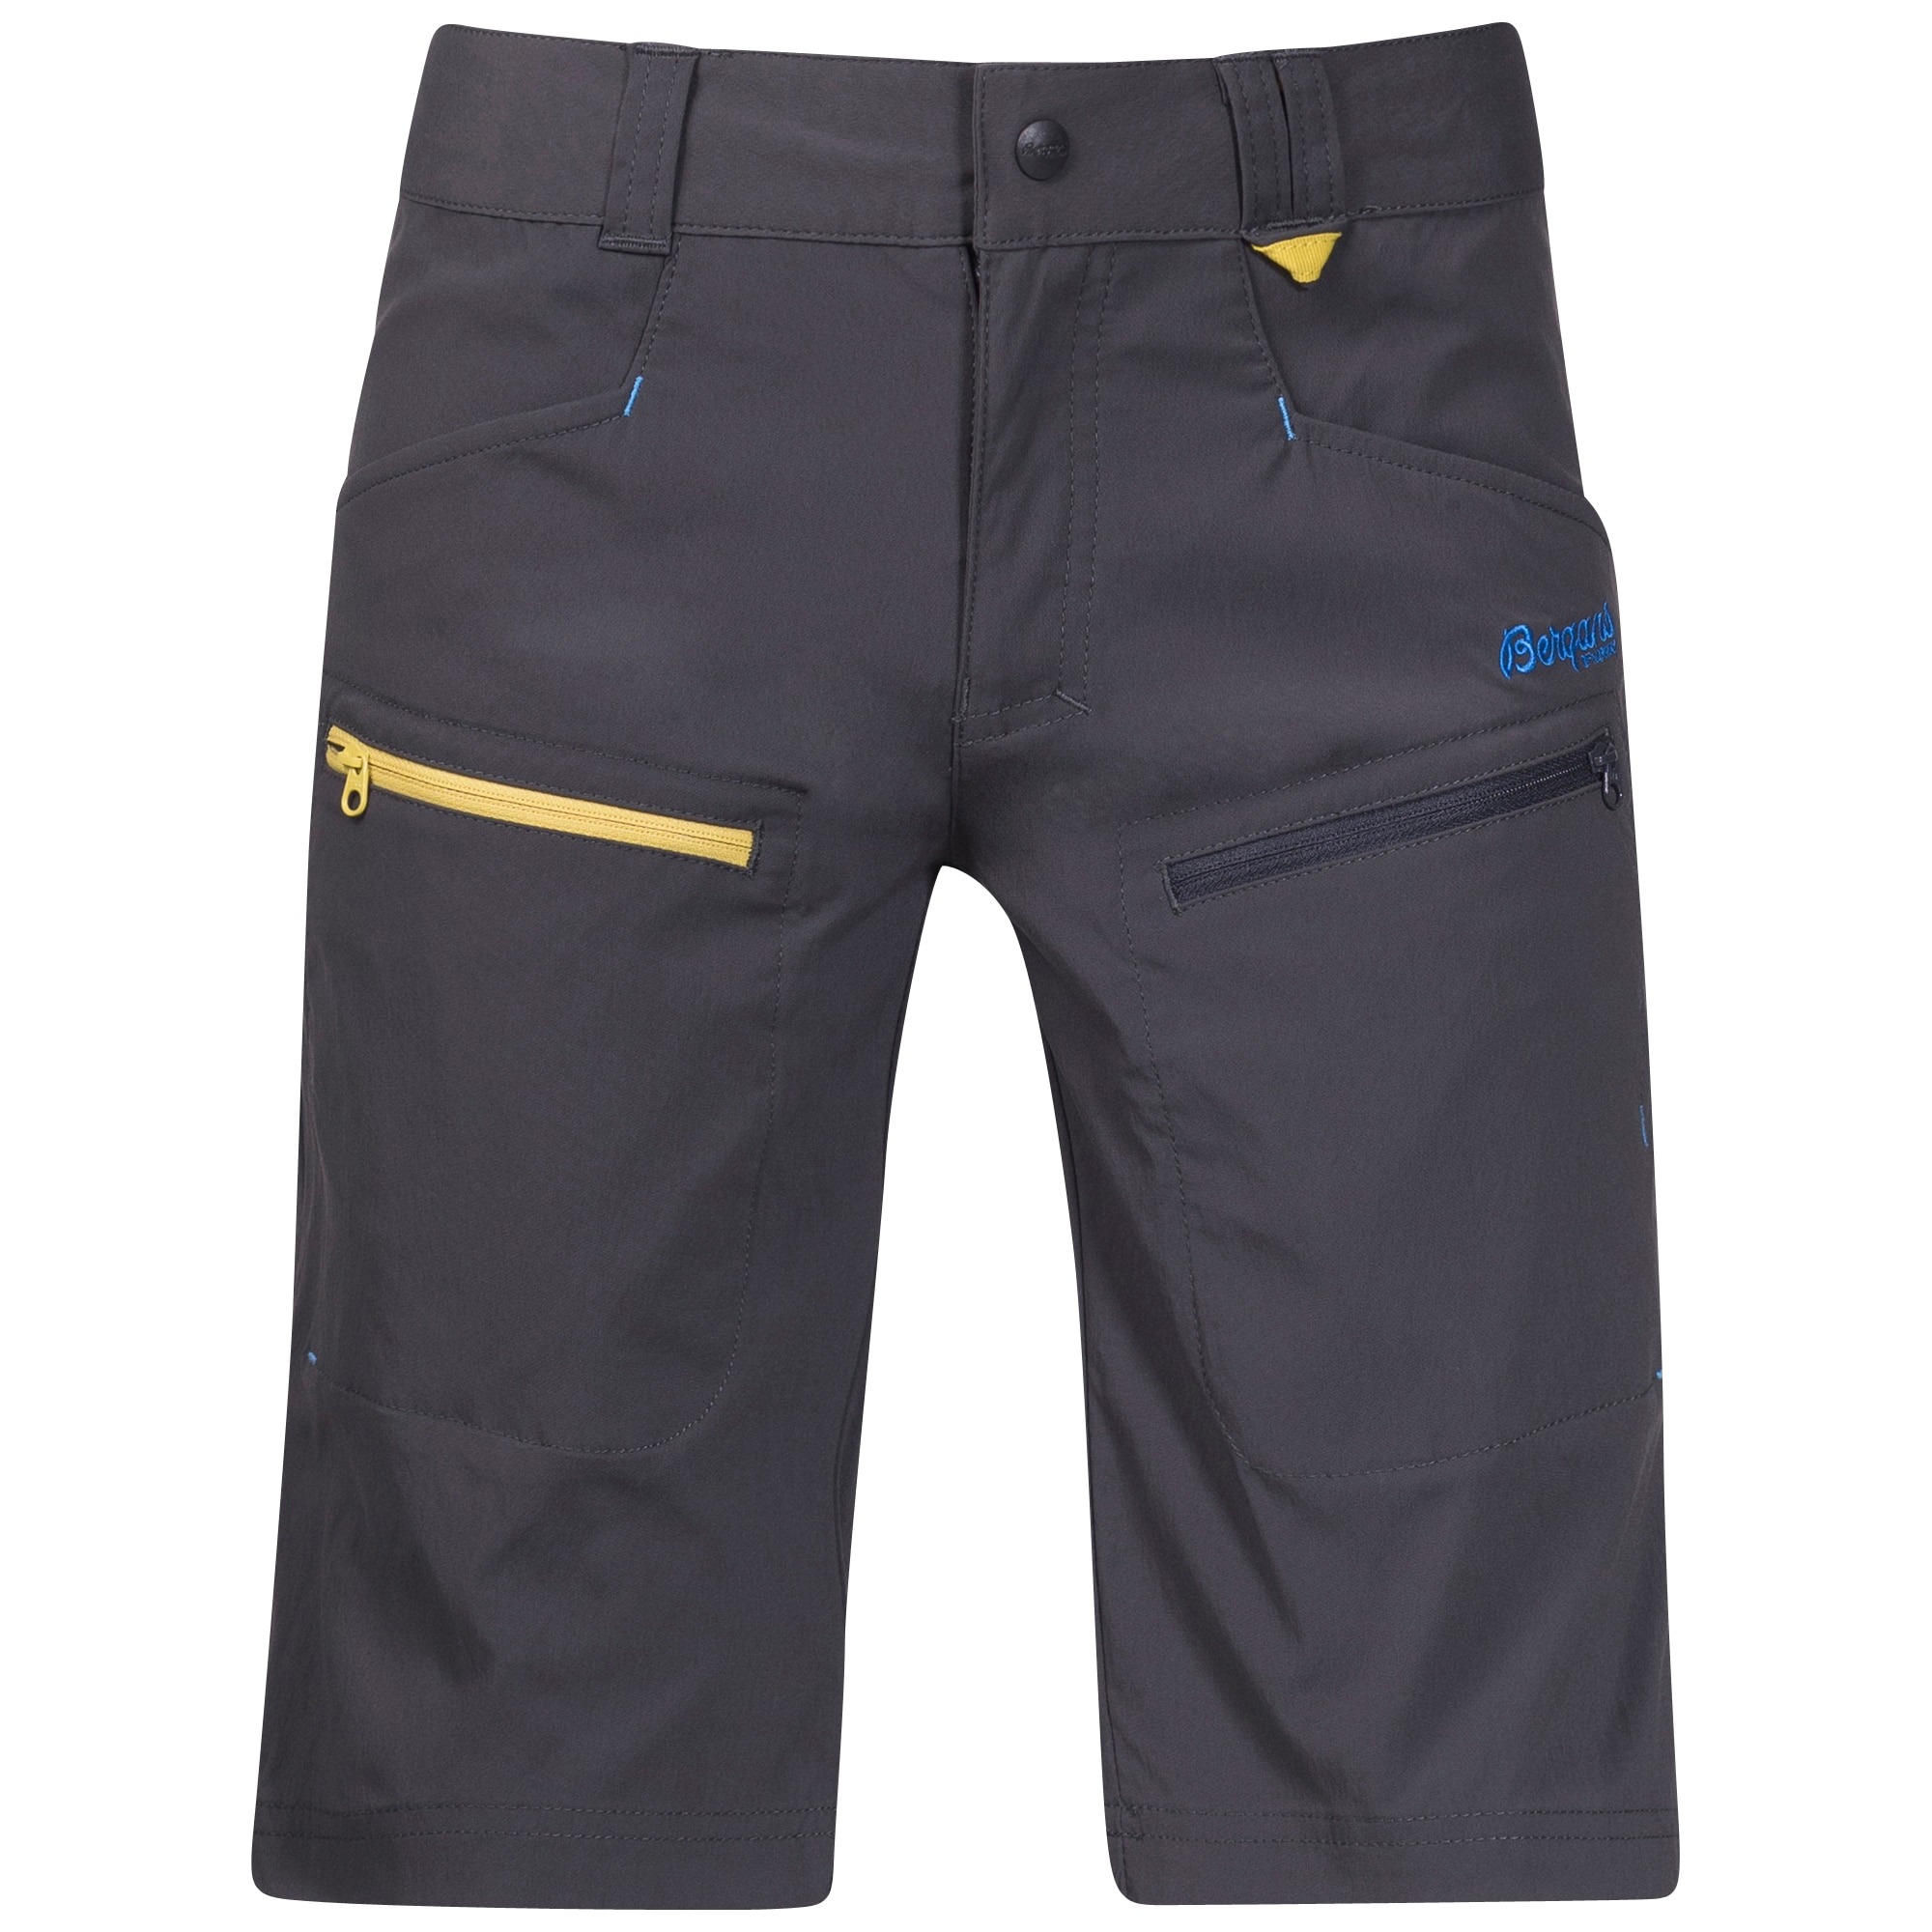 Utne Youth Shorts